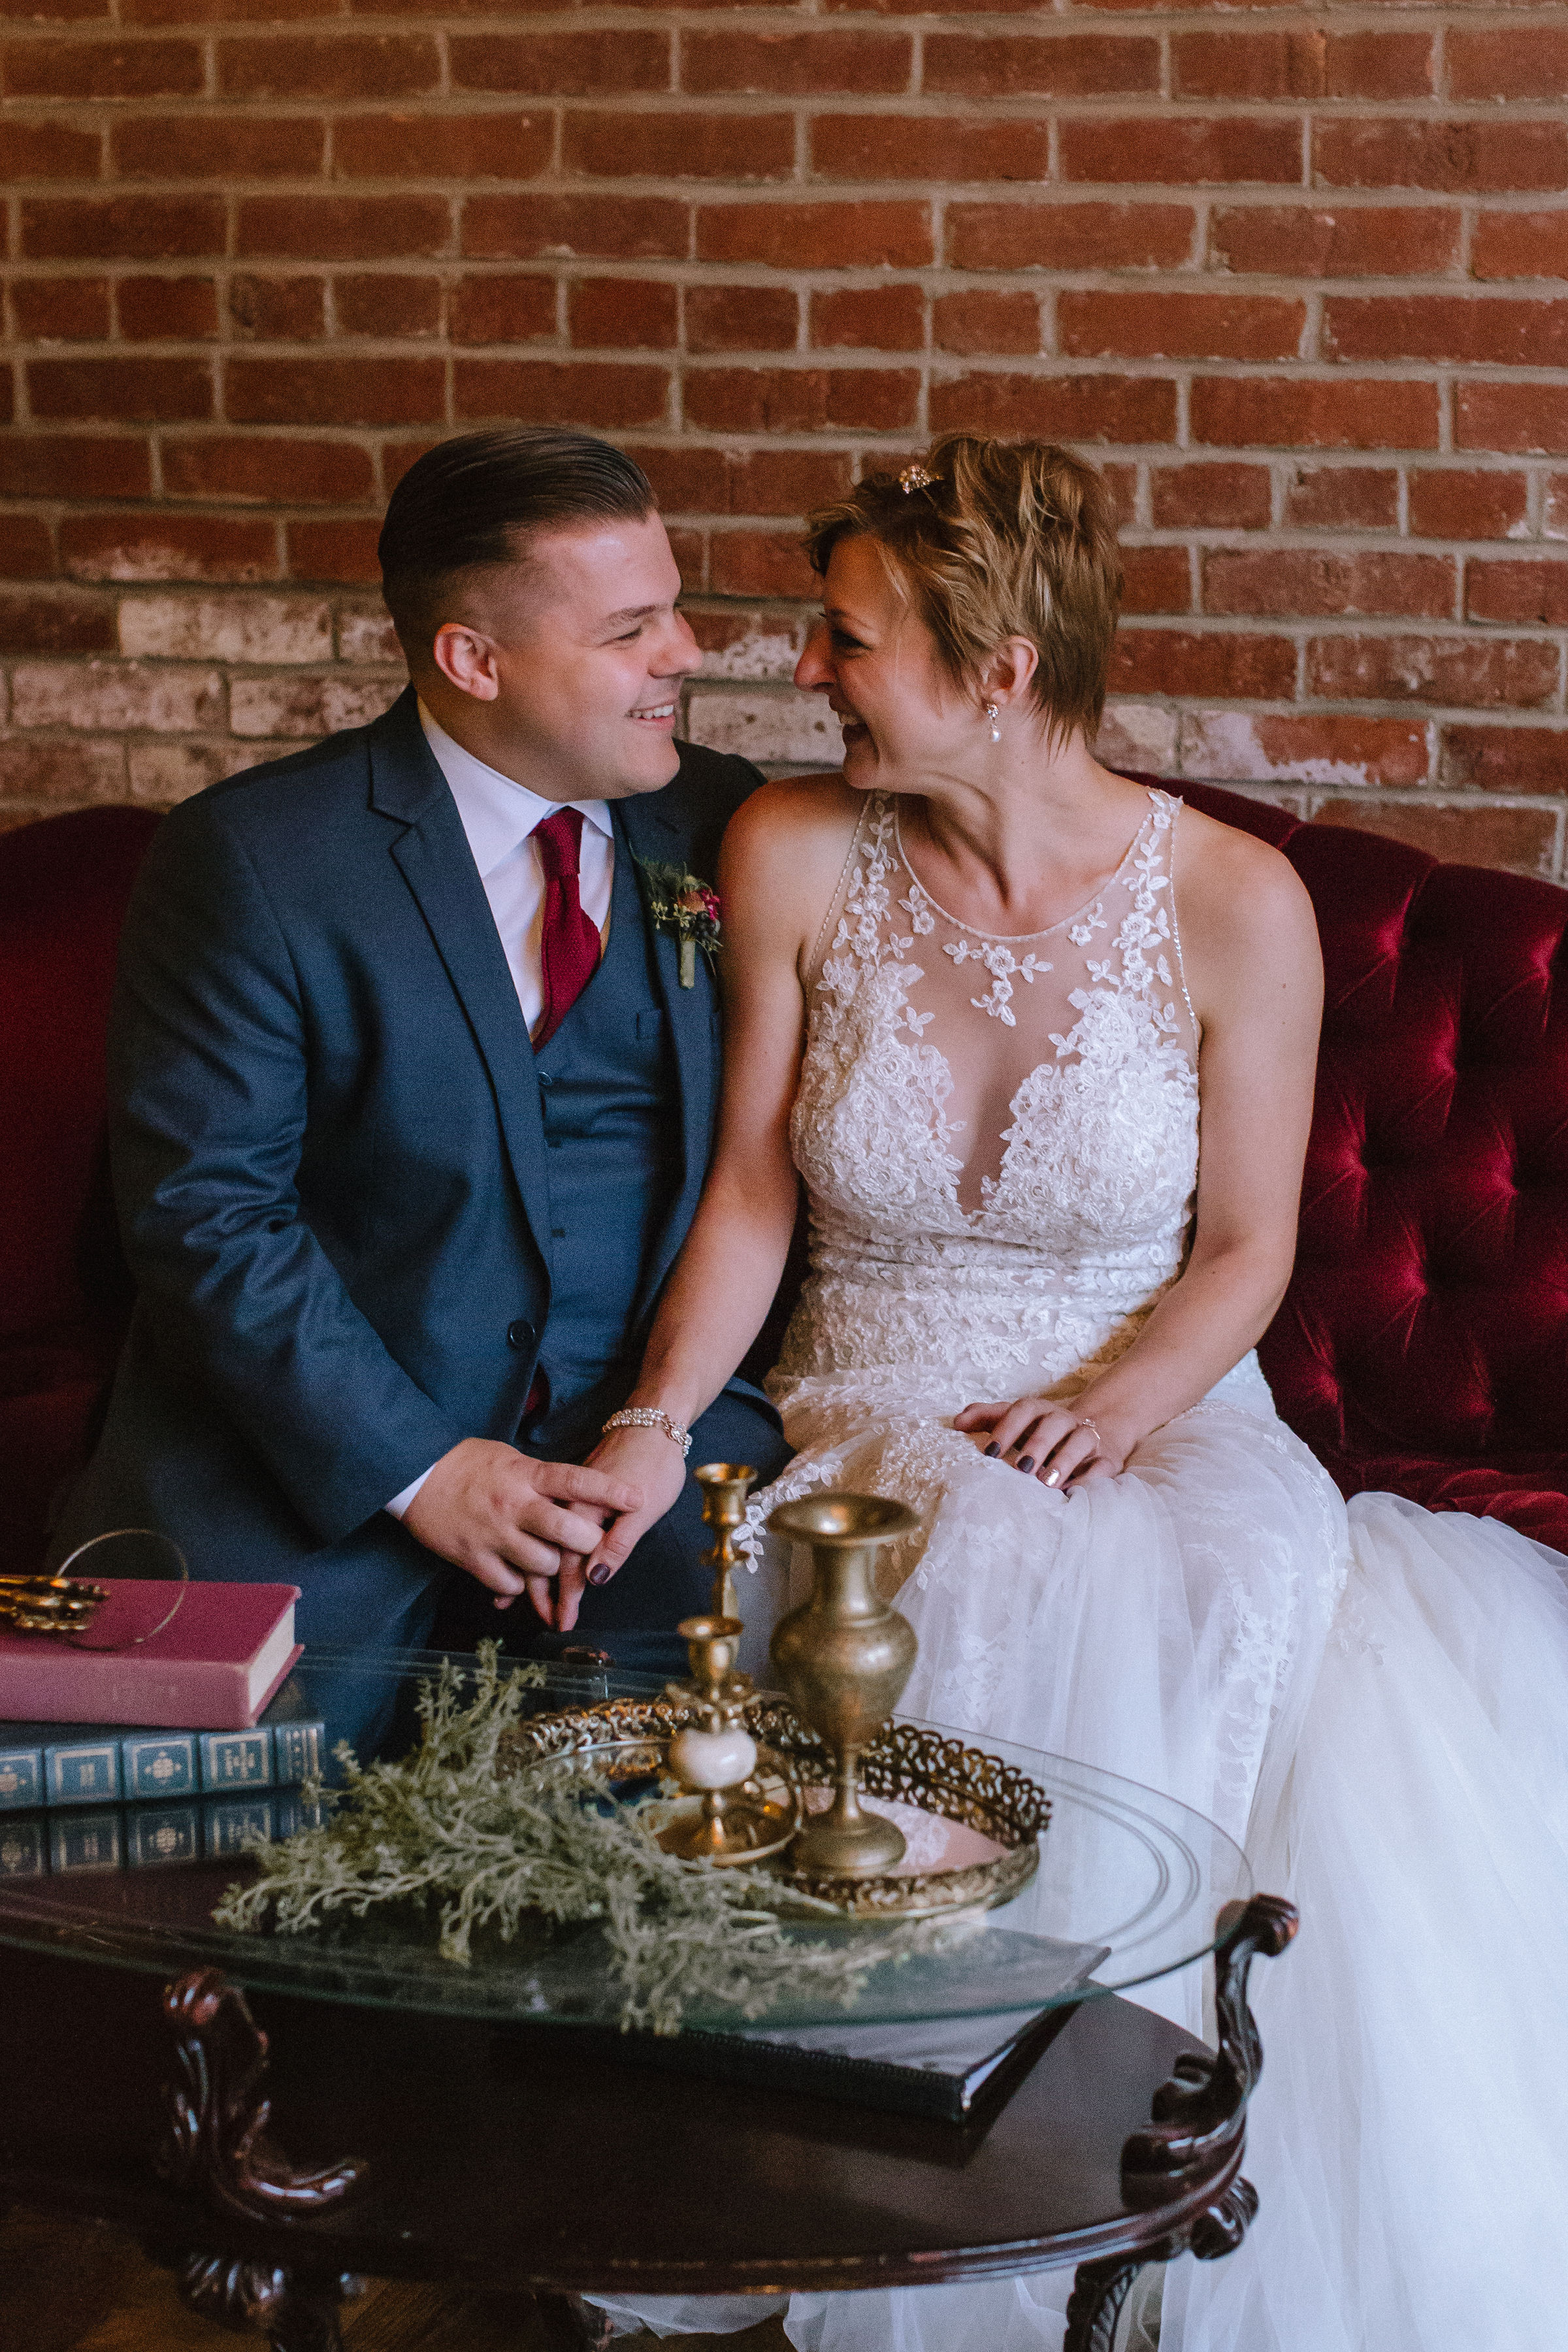 Slate Pittsburgh Wedding - Bride and groom pose with vintage decor for Pittsburgh wedding at Studio Slate planned by Exhale Events. Find more wedding inspiration at exhale-events.com